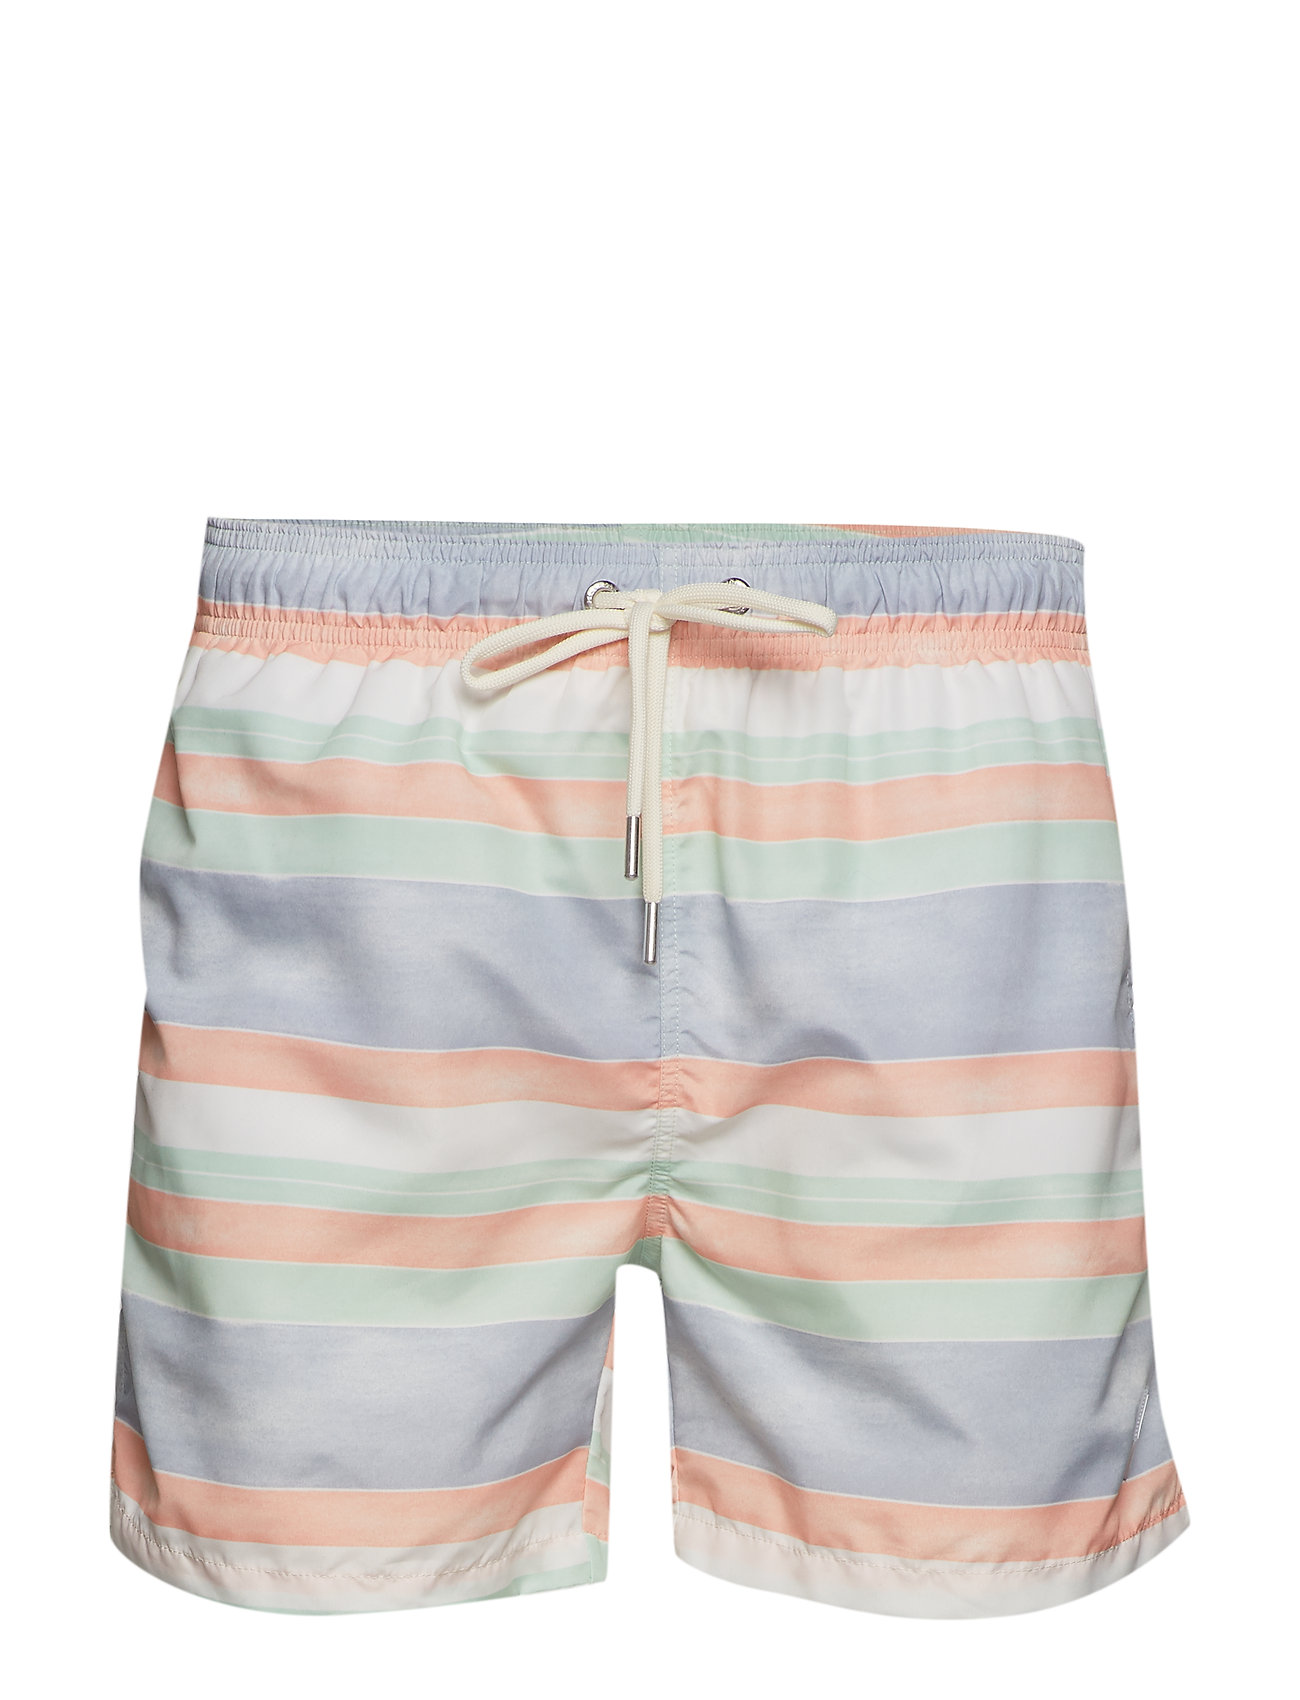 GANT SUNFADED STRIPES SWIM SHORTS C.F - PEACH BUD